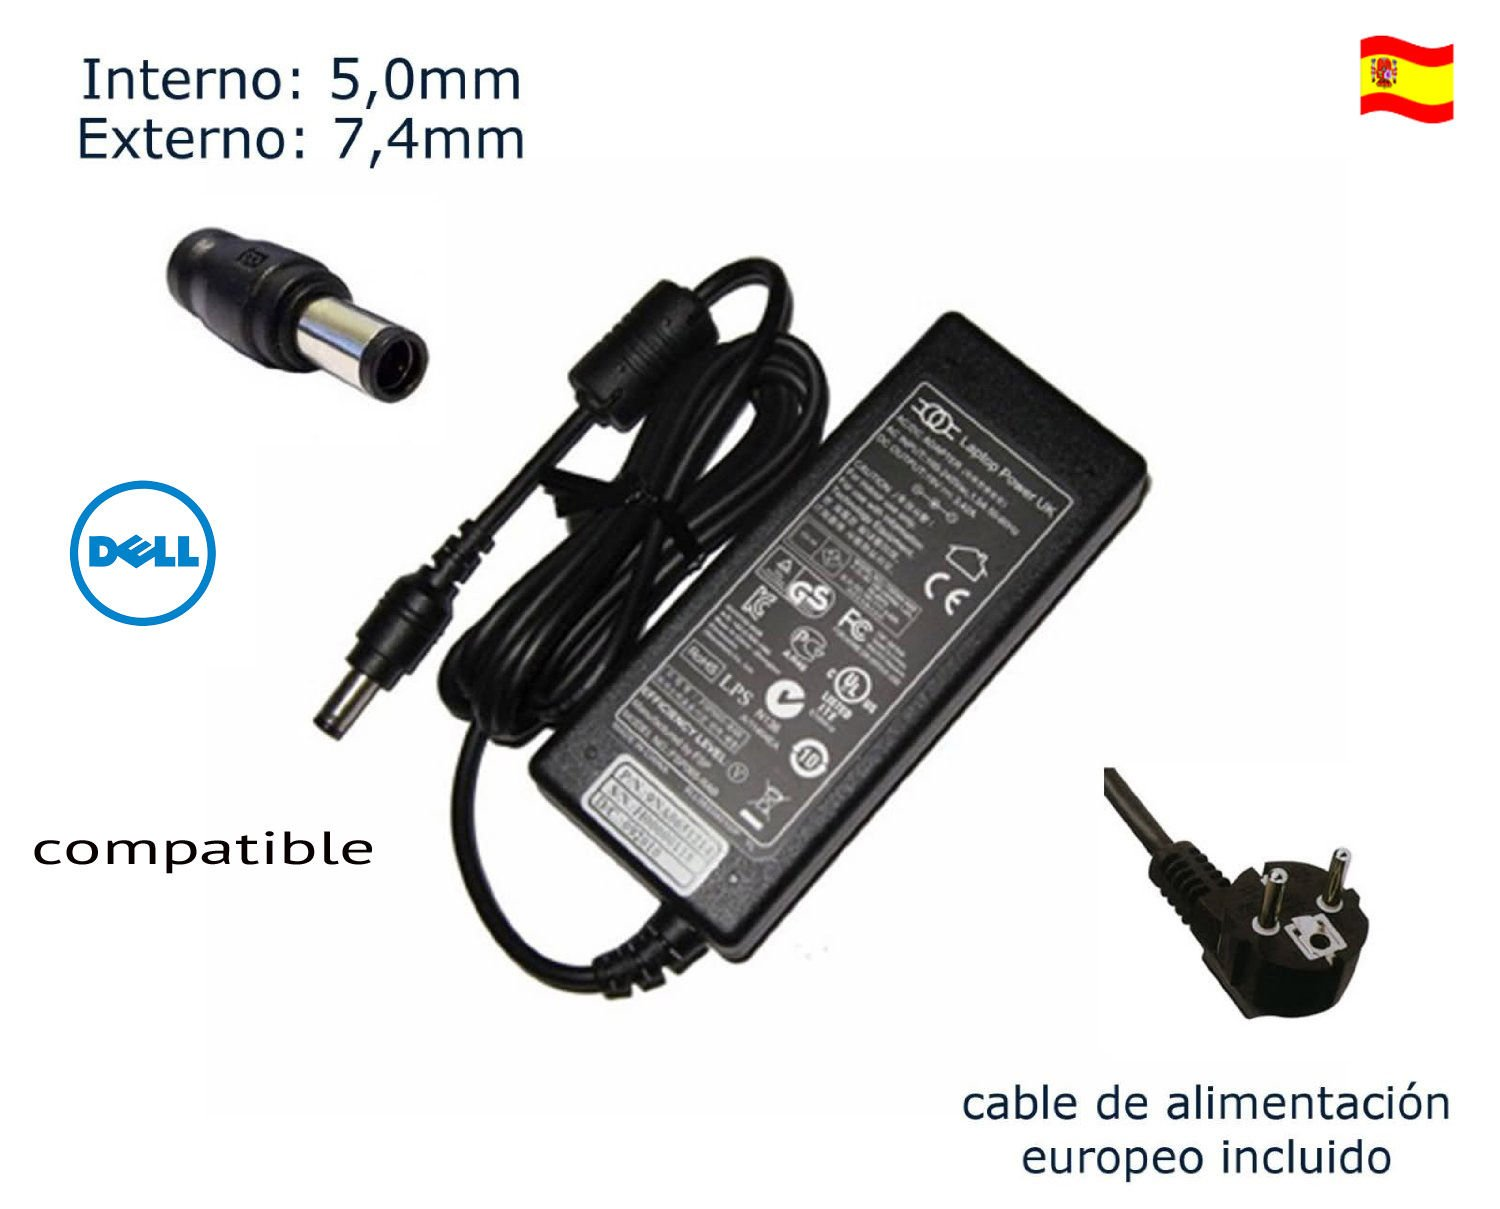 Cargador de portátil Dell Inspiron 1545 1555 1564 1570 1520 1521 1525 1526 Laptop Notebook Battery Charger Power Supply Cord Plug 90 Watt Alimentación, ...